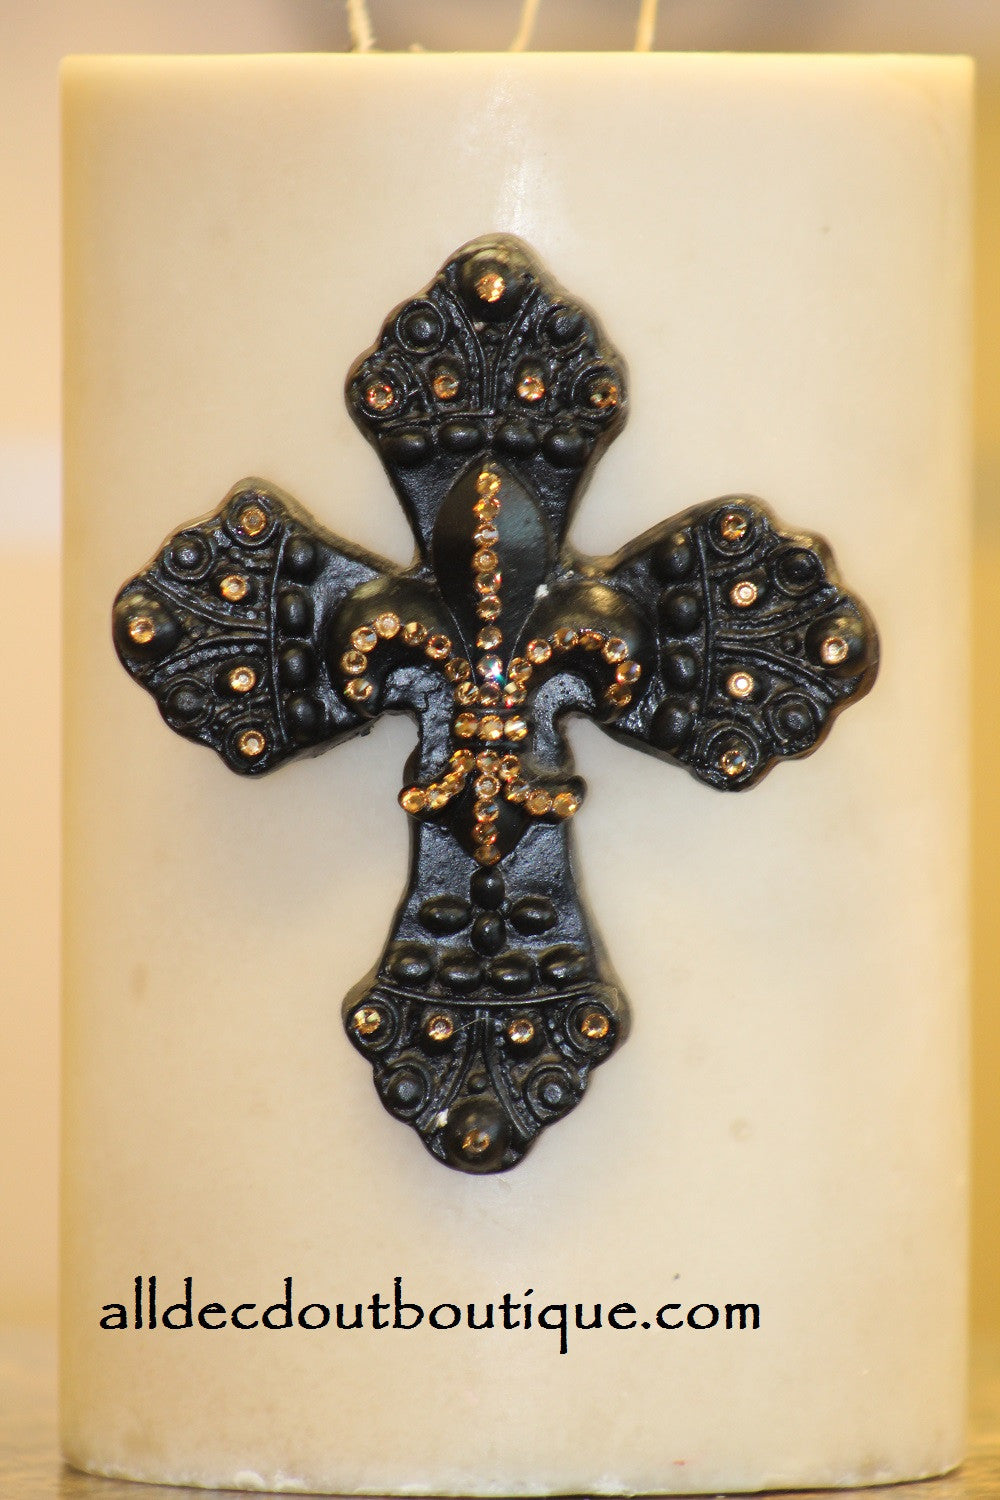 DECORATIVE CANDLE PIN EMBELLISHED Topaz Crystals Large Cross/Fleur De Lis